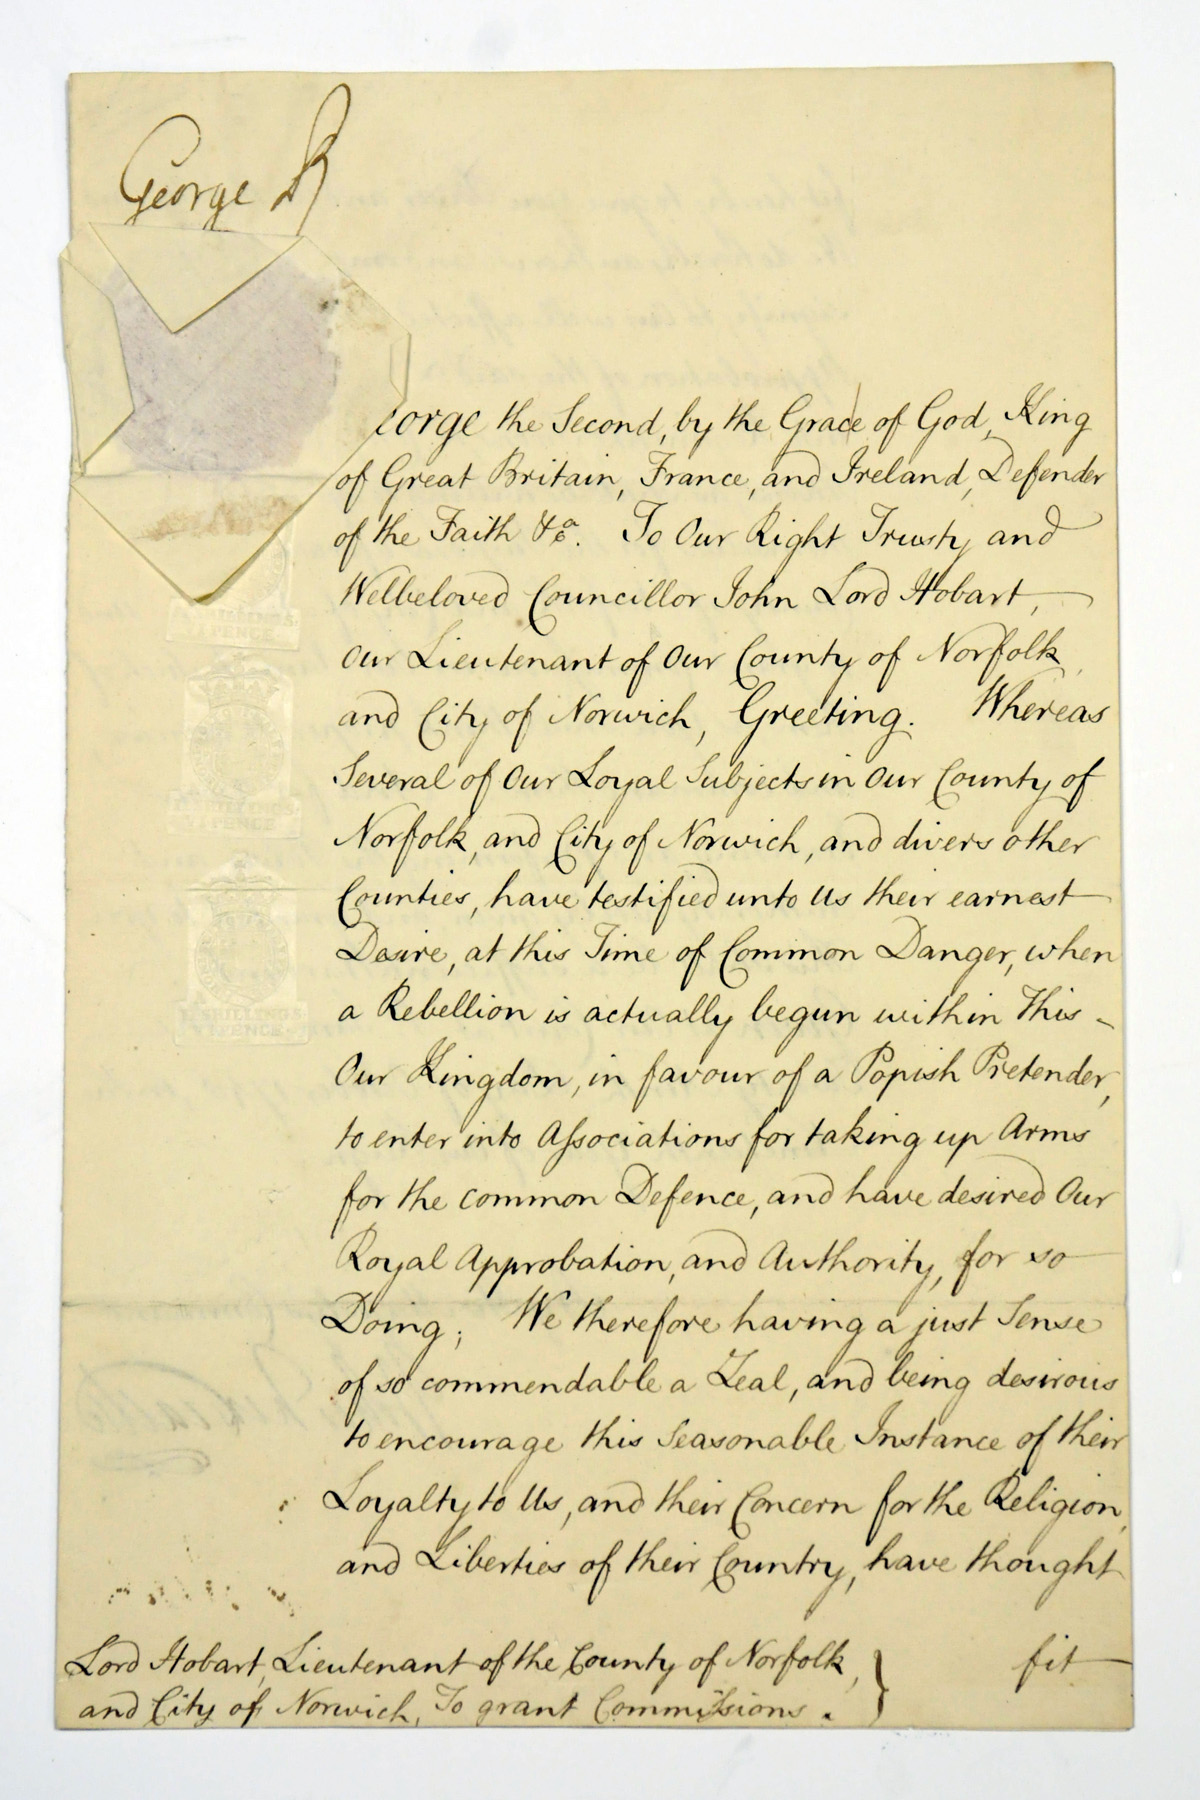 GEORGE II (1683-1760), King of Great Britain and Ireland. Document signed, St James's, 29 October 1745, a warrant to John, Lord Hobart [later 1st Earl of Buckingham], Lieutenant of Norfolk and Norwich, authorising him to grant commissions to loyal subjects forming military units 'at this Time of Common Danger, when a Rebellion is actually begun within This Our Kingdom, in favour of a Popish Pretender', countersigned by Thomas, 1st Duke of Newcastle, 2 pages, folio, papered seal, blank, docket;